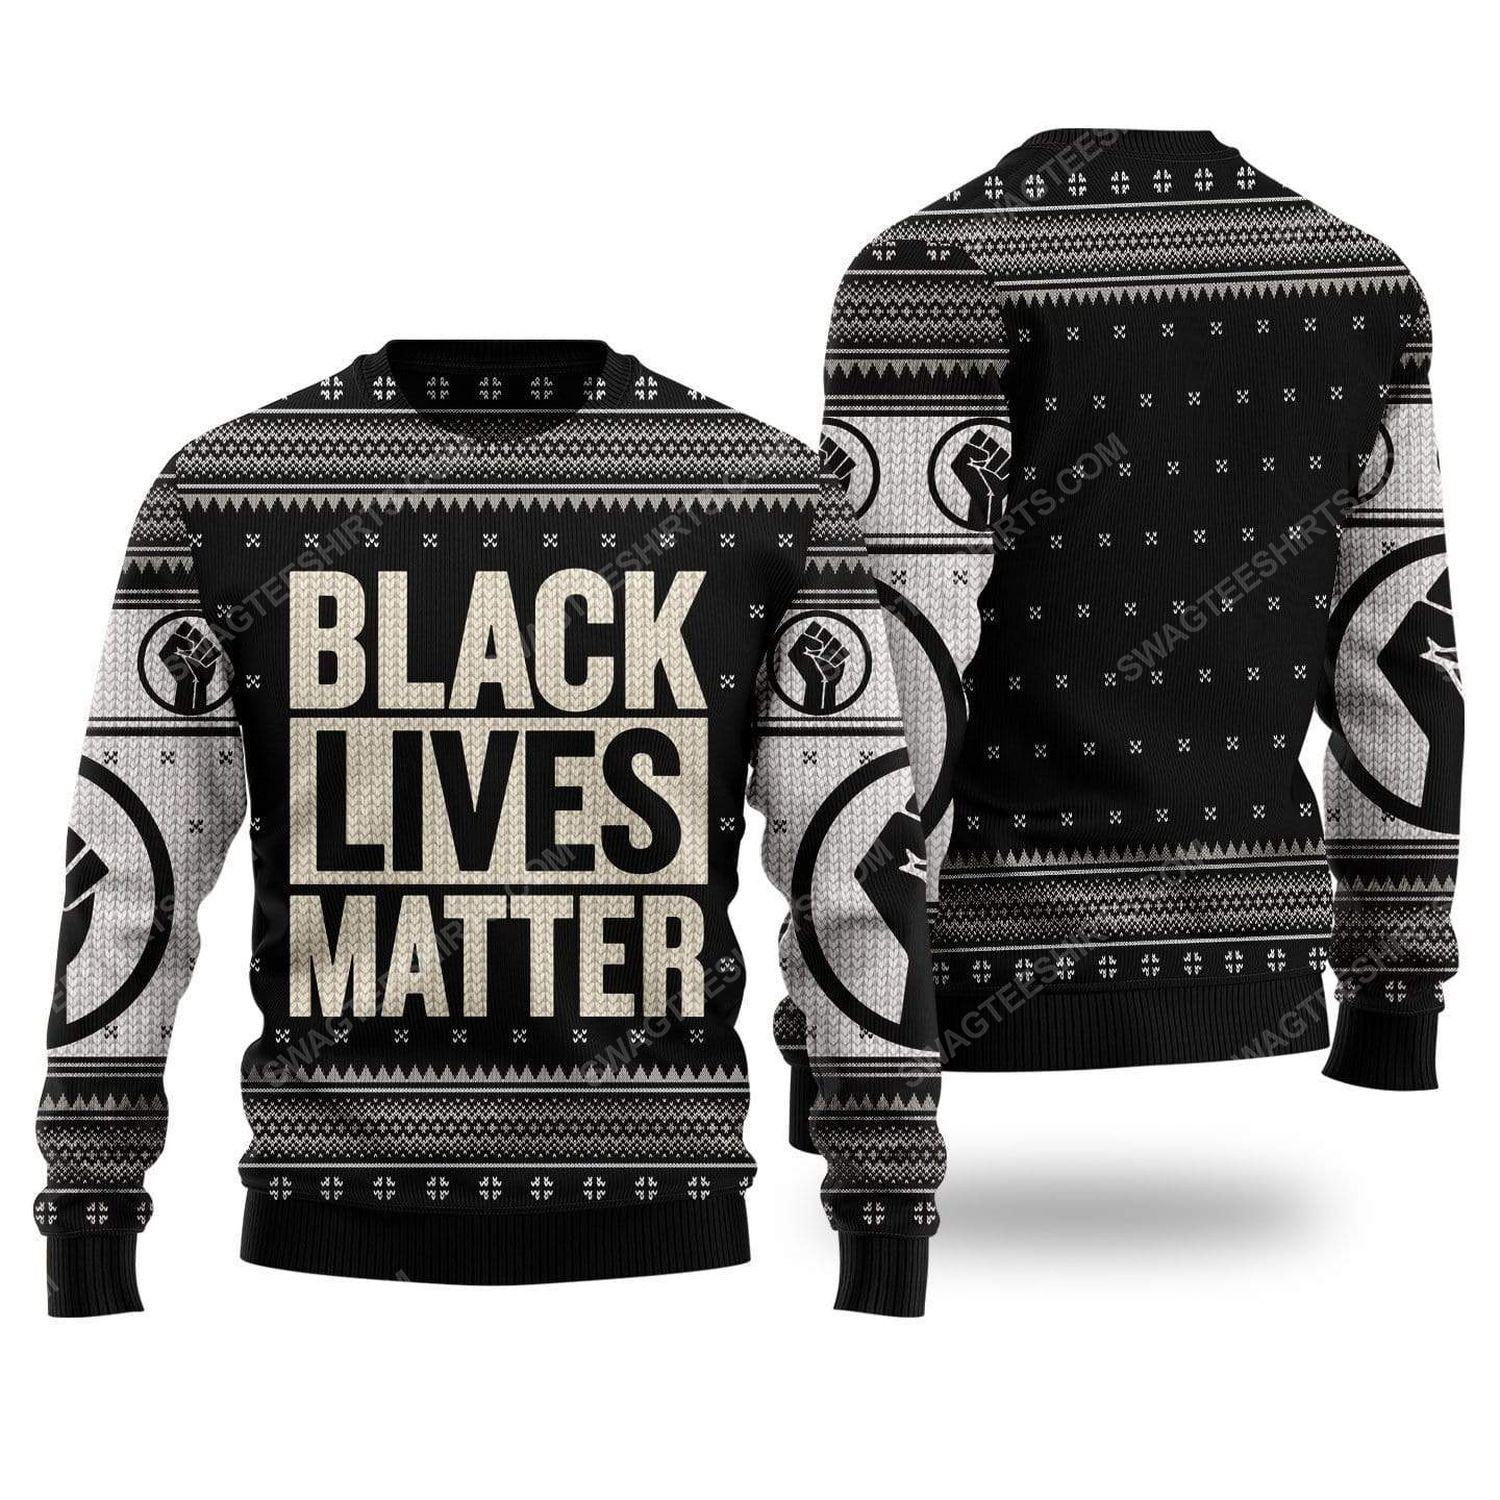 Black lives matter all over print ugly christmas sweater 2 - Copy